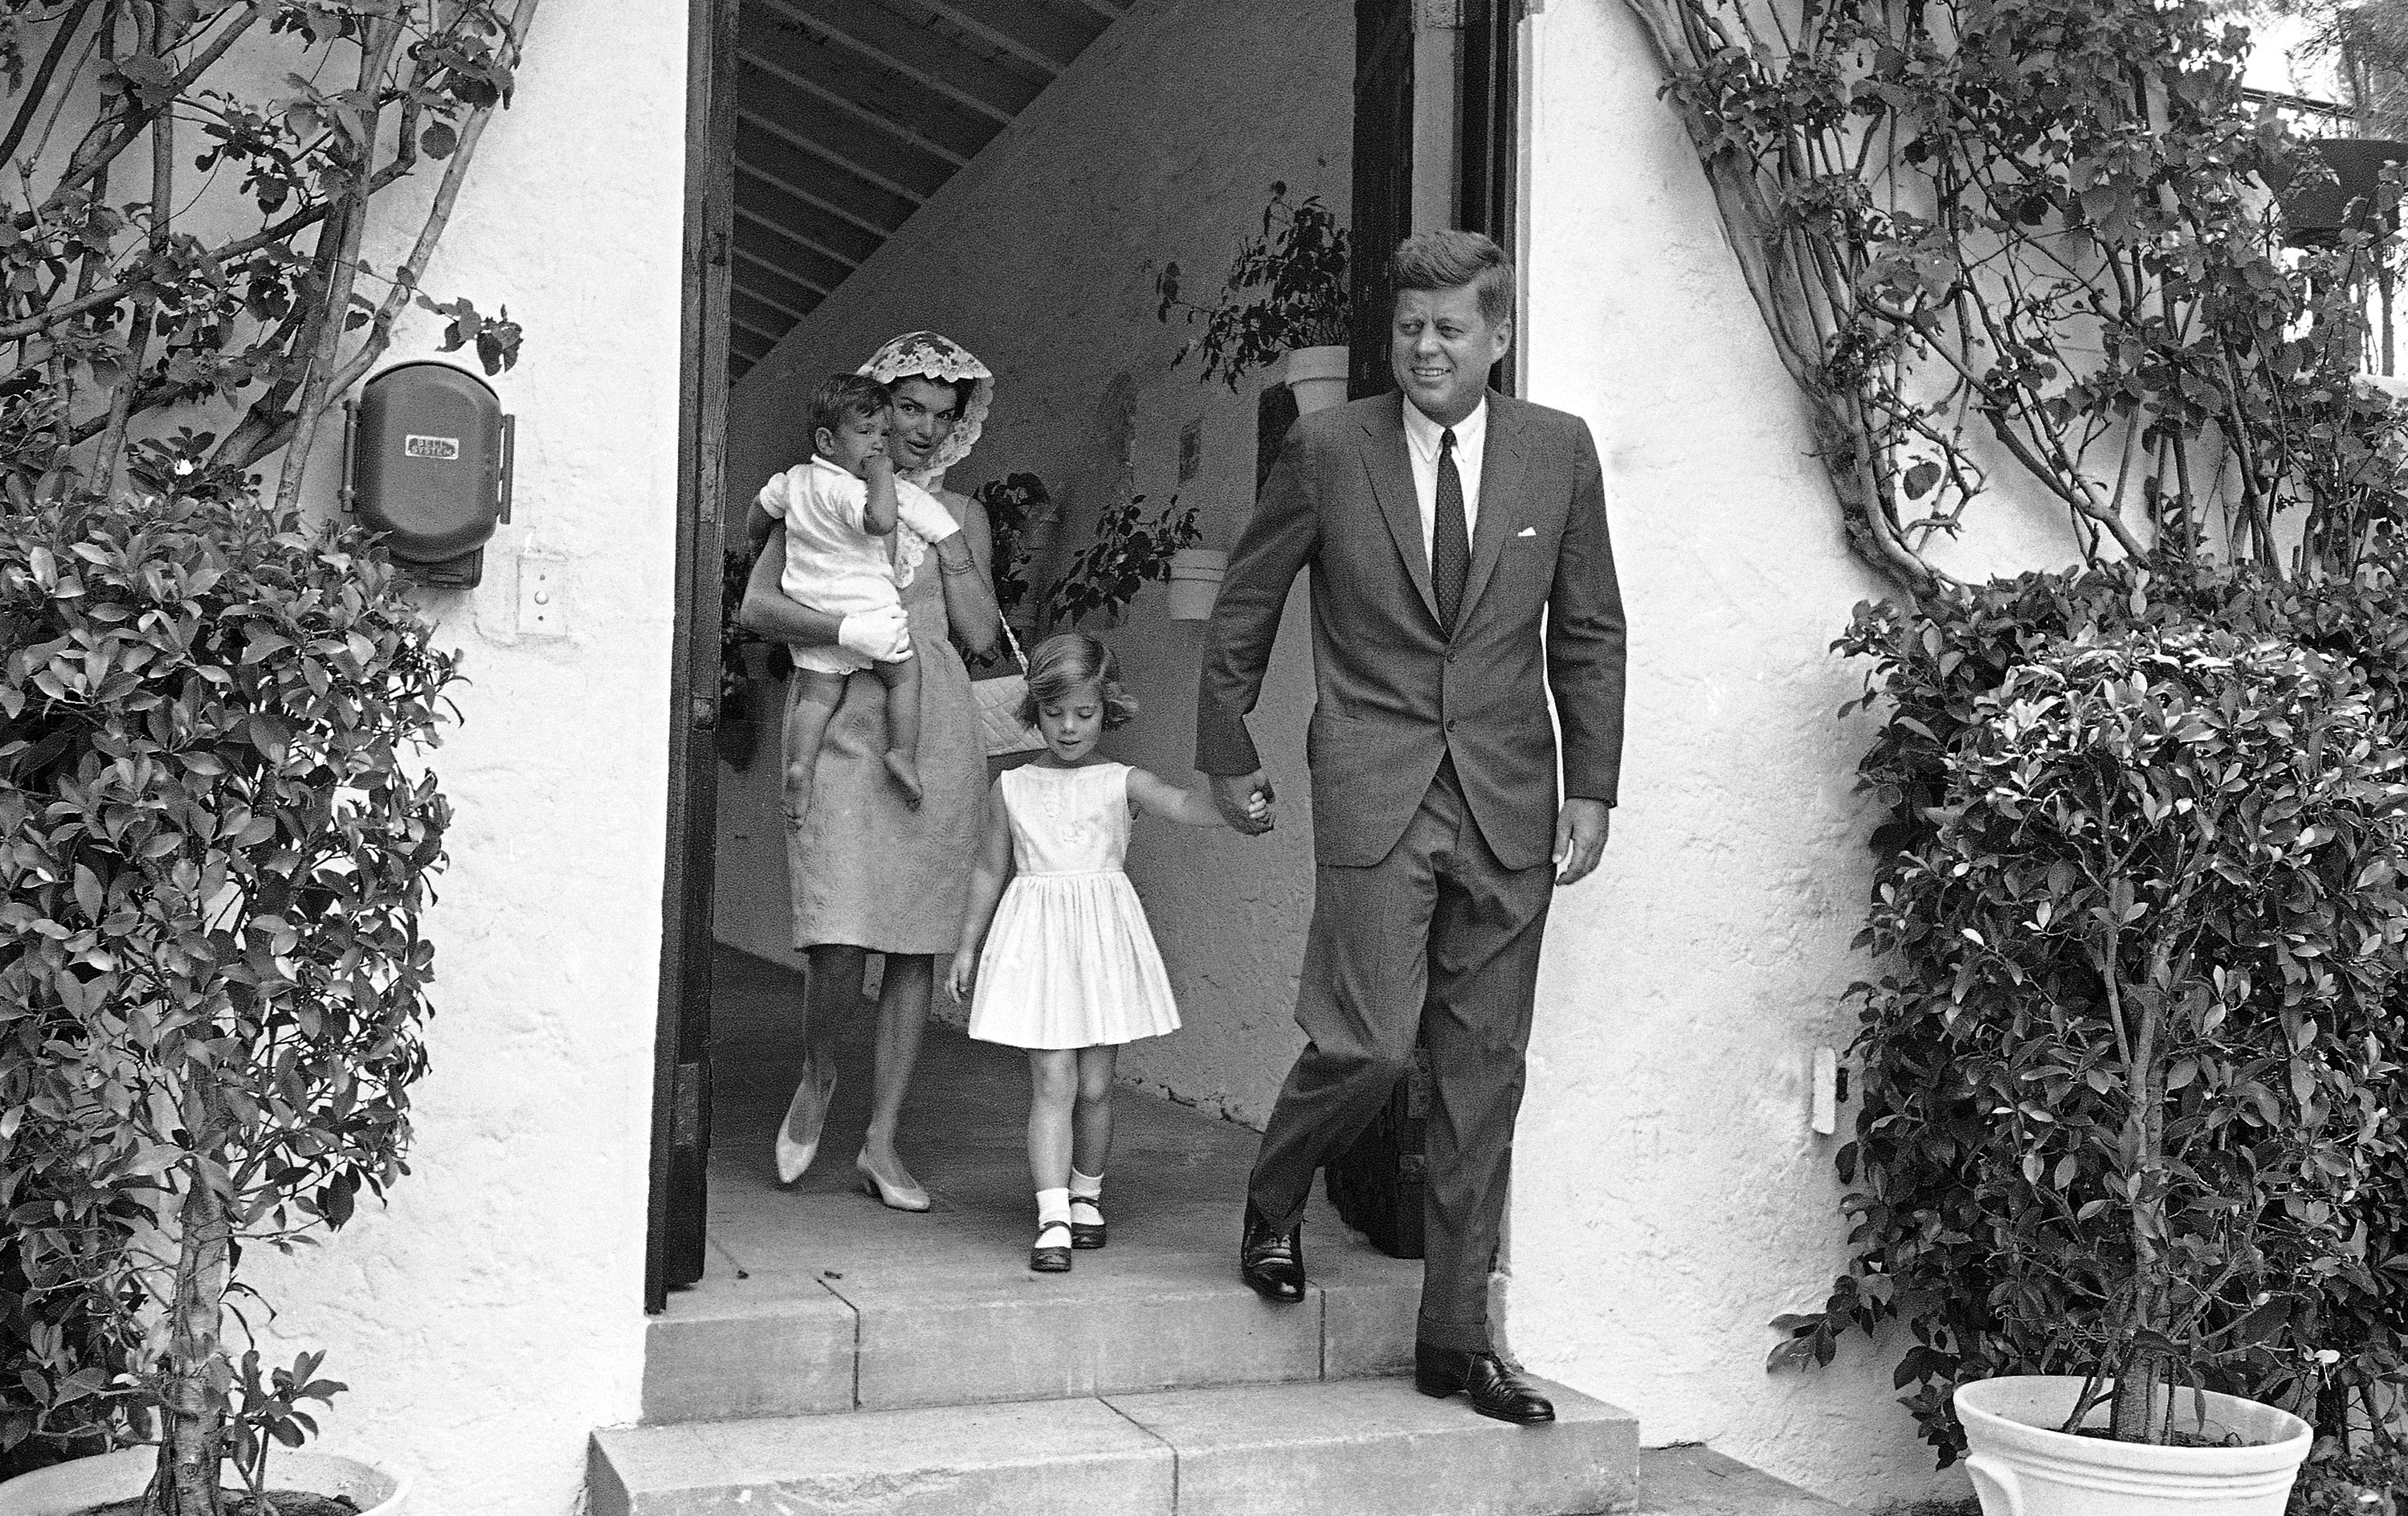 <div class='meta'><div class='origin-logo' data-origin='none'></div><span class='caption-text' data-credit='AP'>President John F. Kennedy, Jacqueline Kennedy and their children as they left a private family mass in Palm Beach, Florida on April 22, 1962.</span></div>